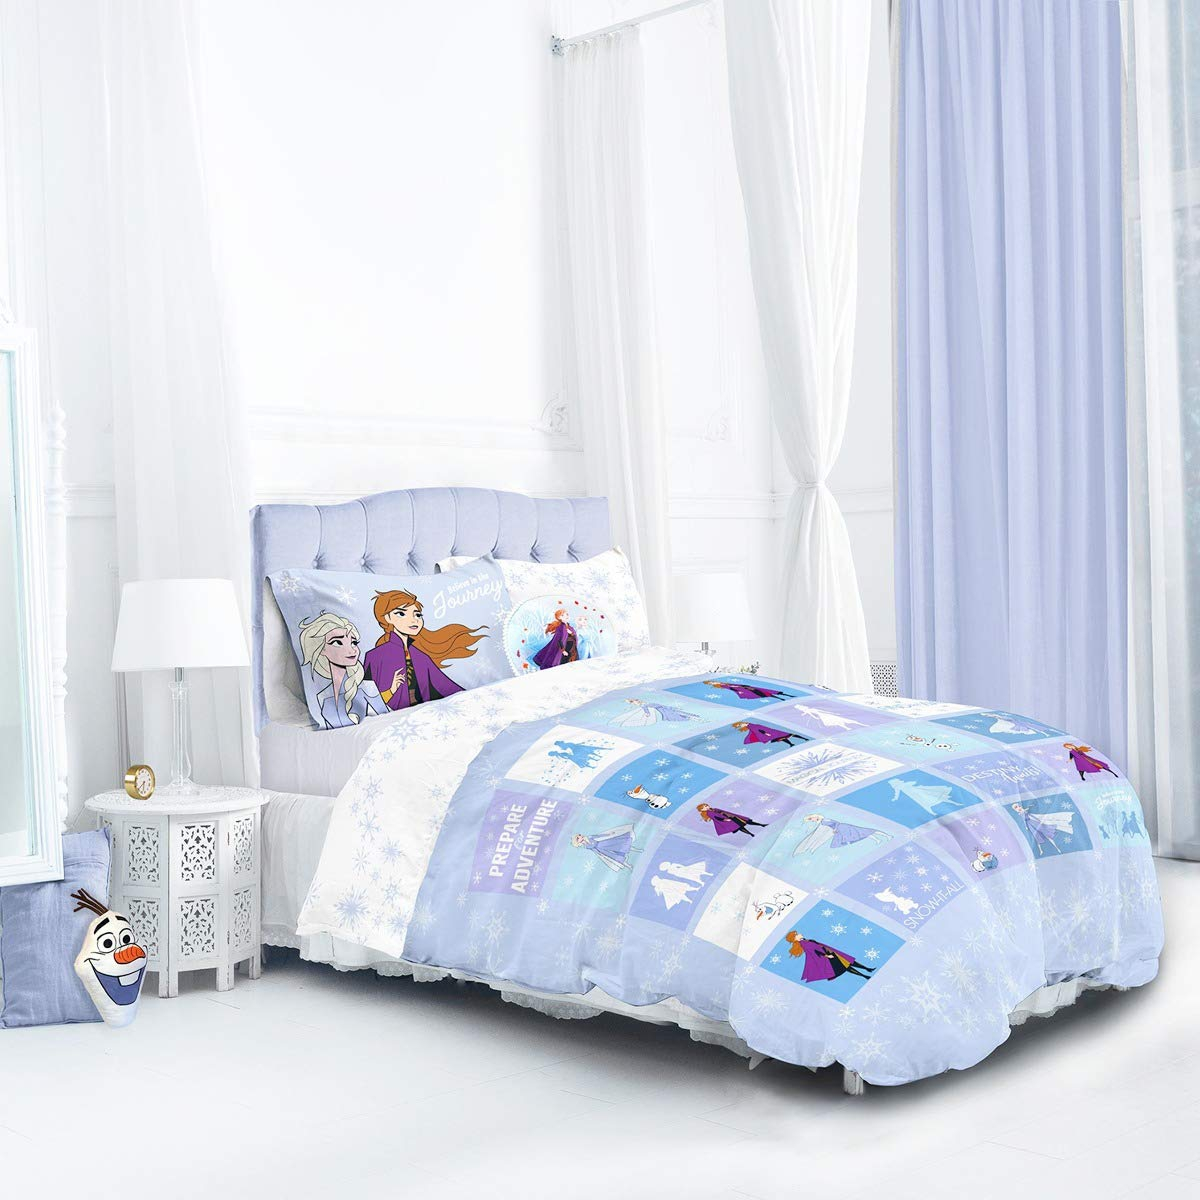 Disney Frozen 2 Patchwork Kids Reversible Panel Double Bed Duvet Quilt Cover Set